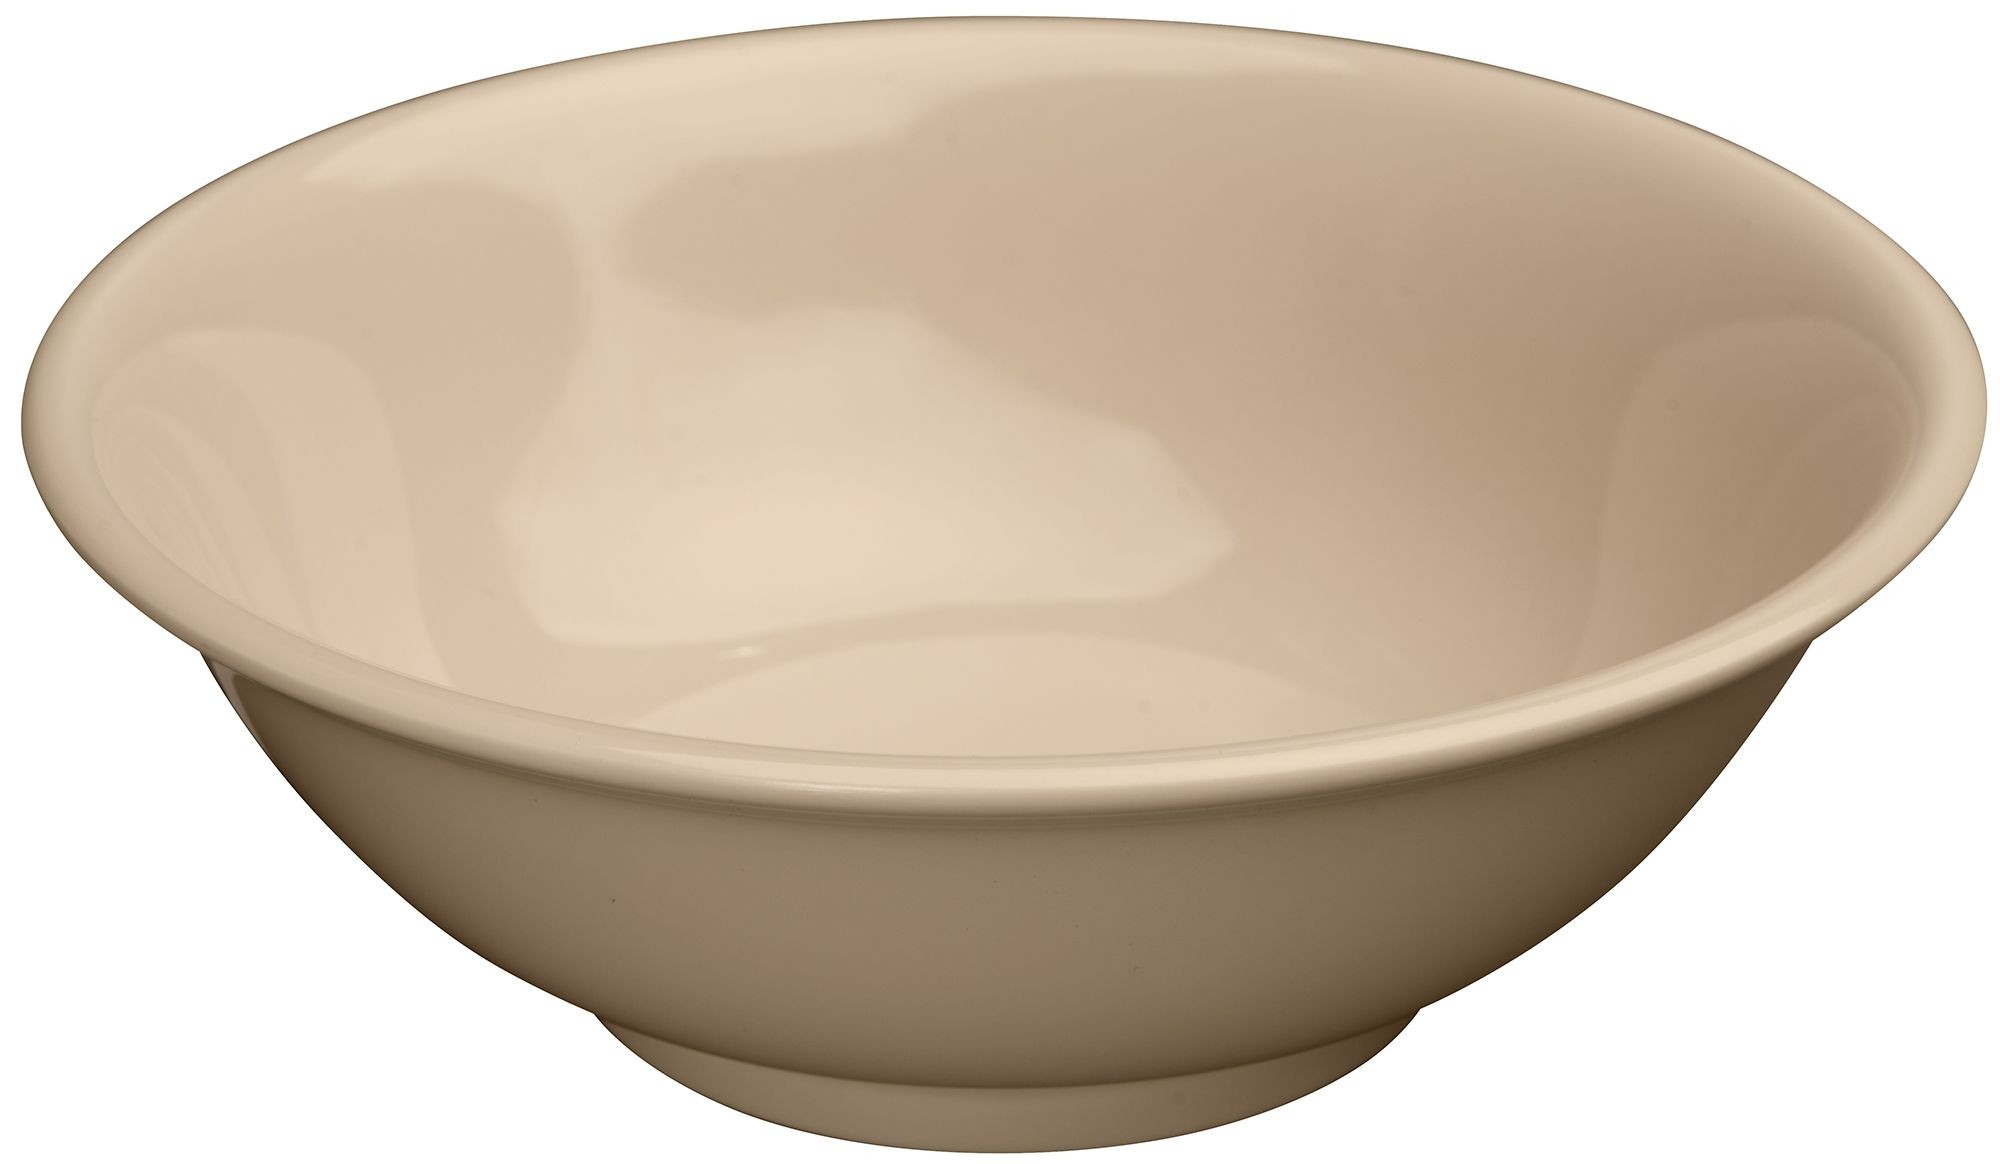 Winco MMB-52 Tan Melamine Rimless Bowl 52 oz.